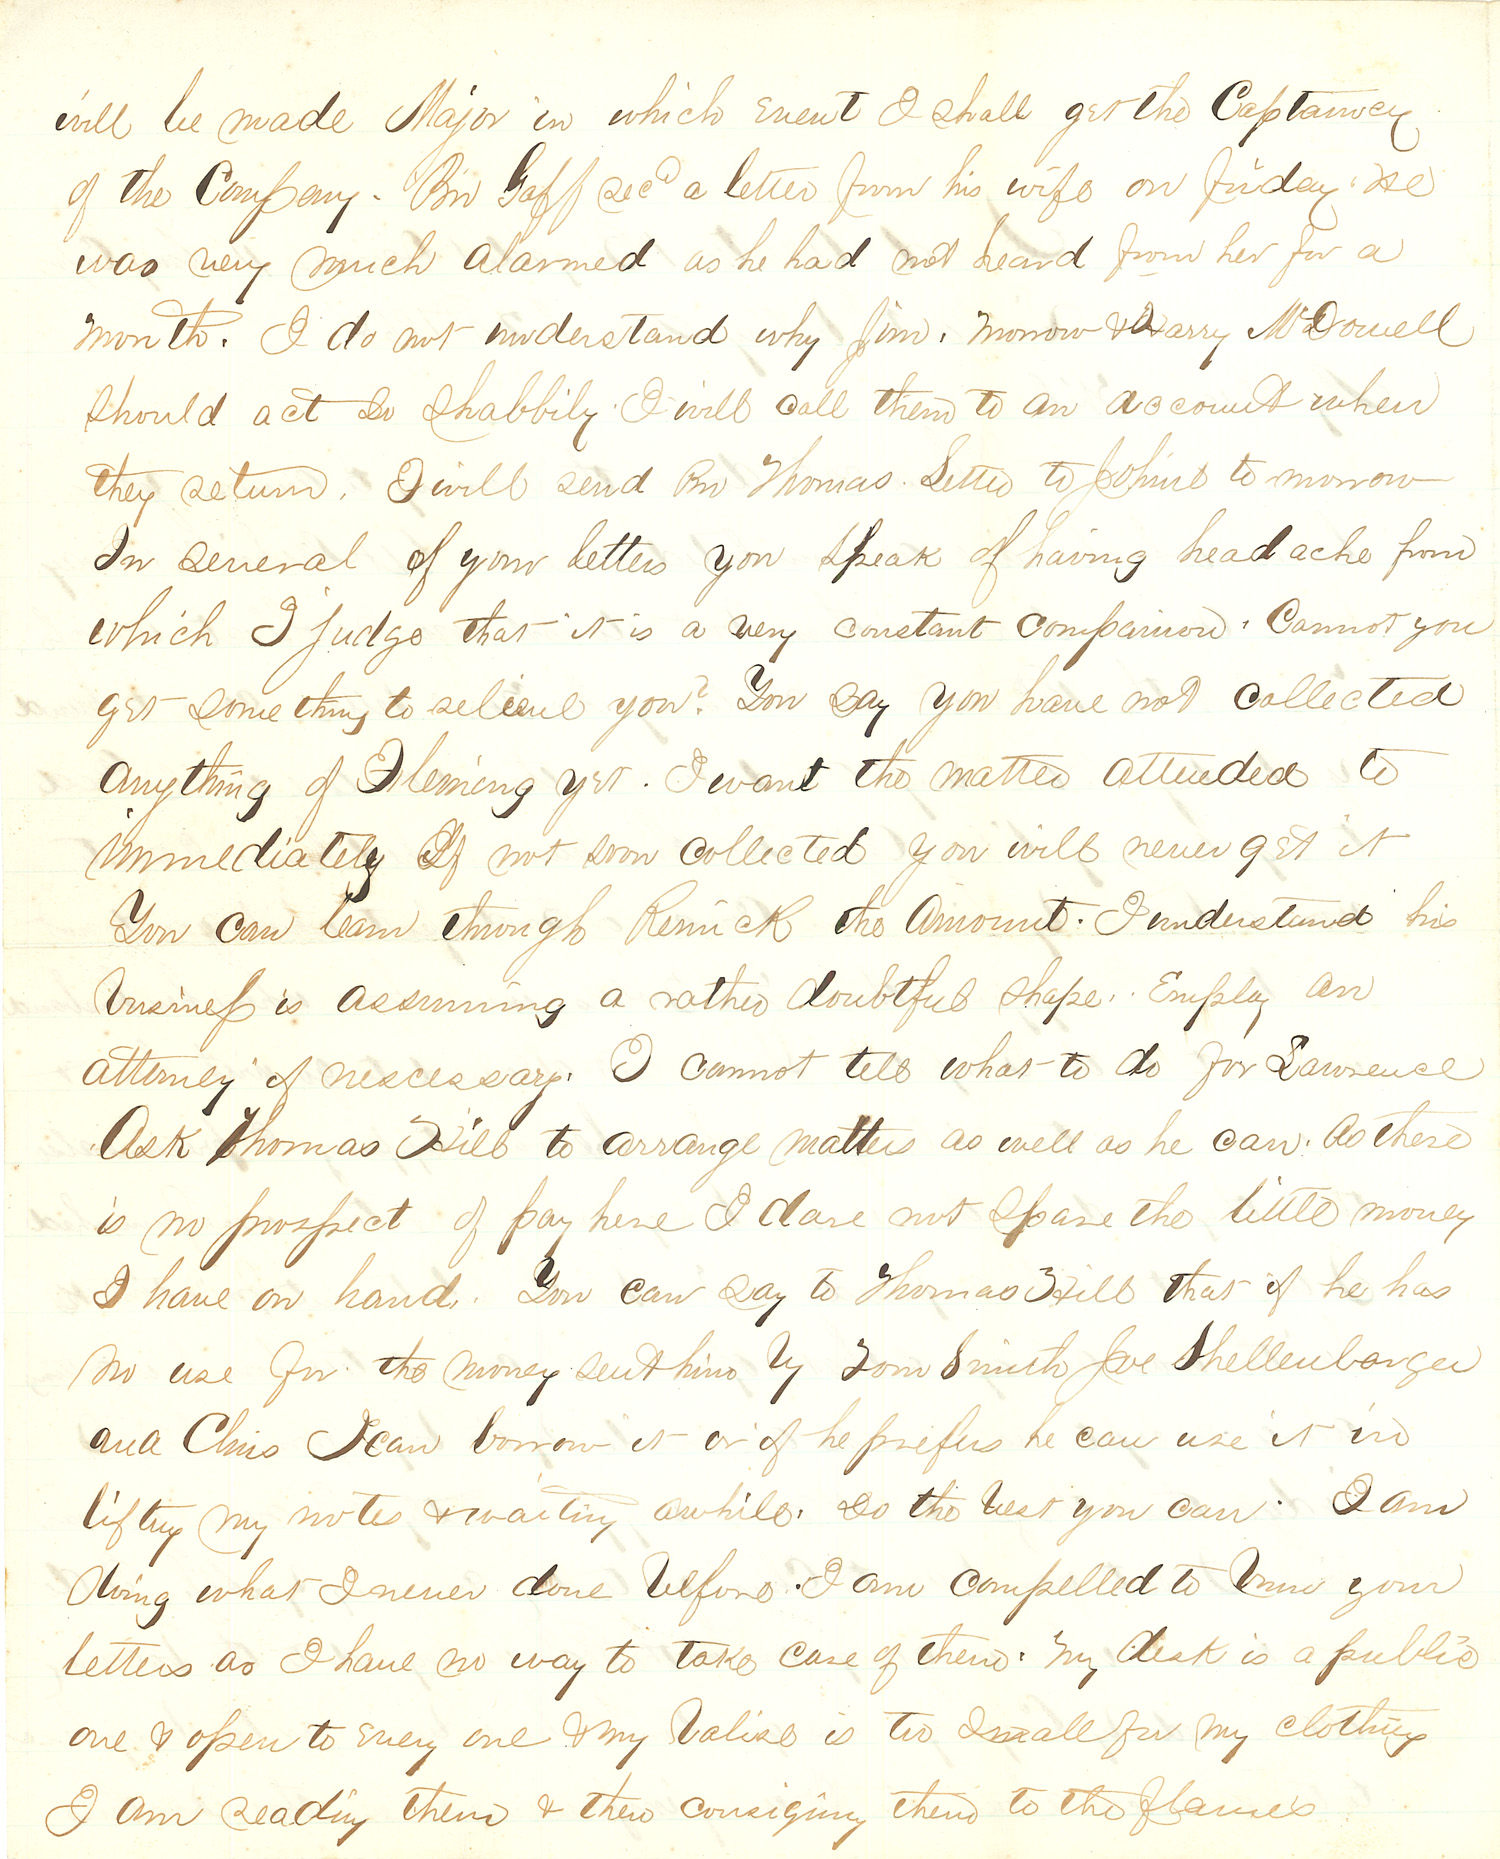 Joseph Culver Letter, March 20, 1864, Page 2